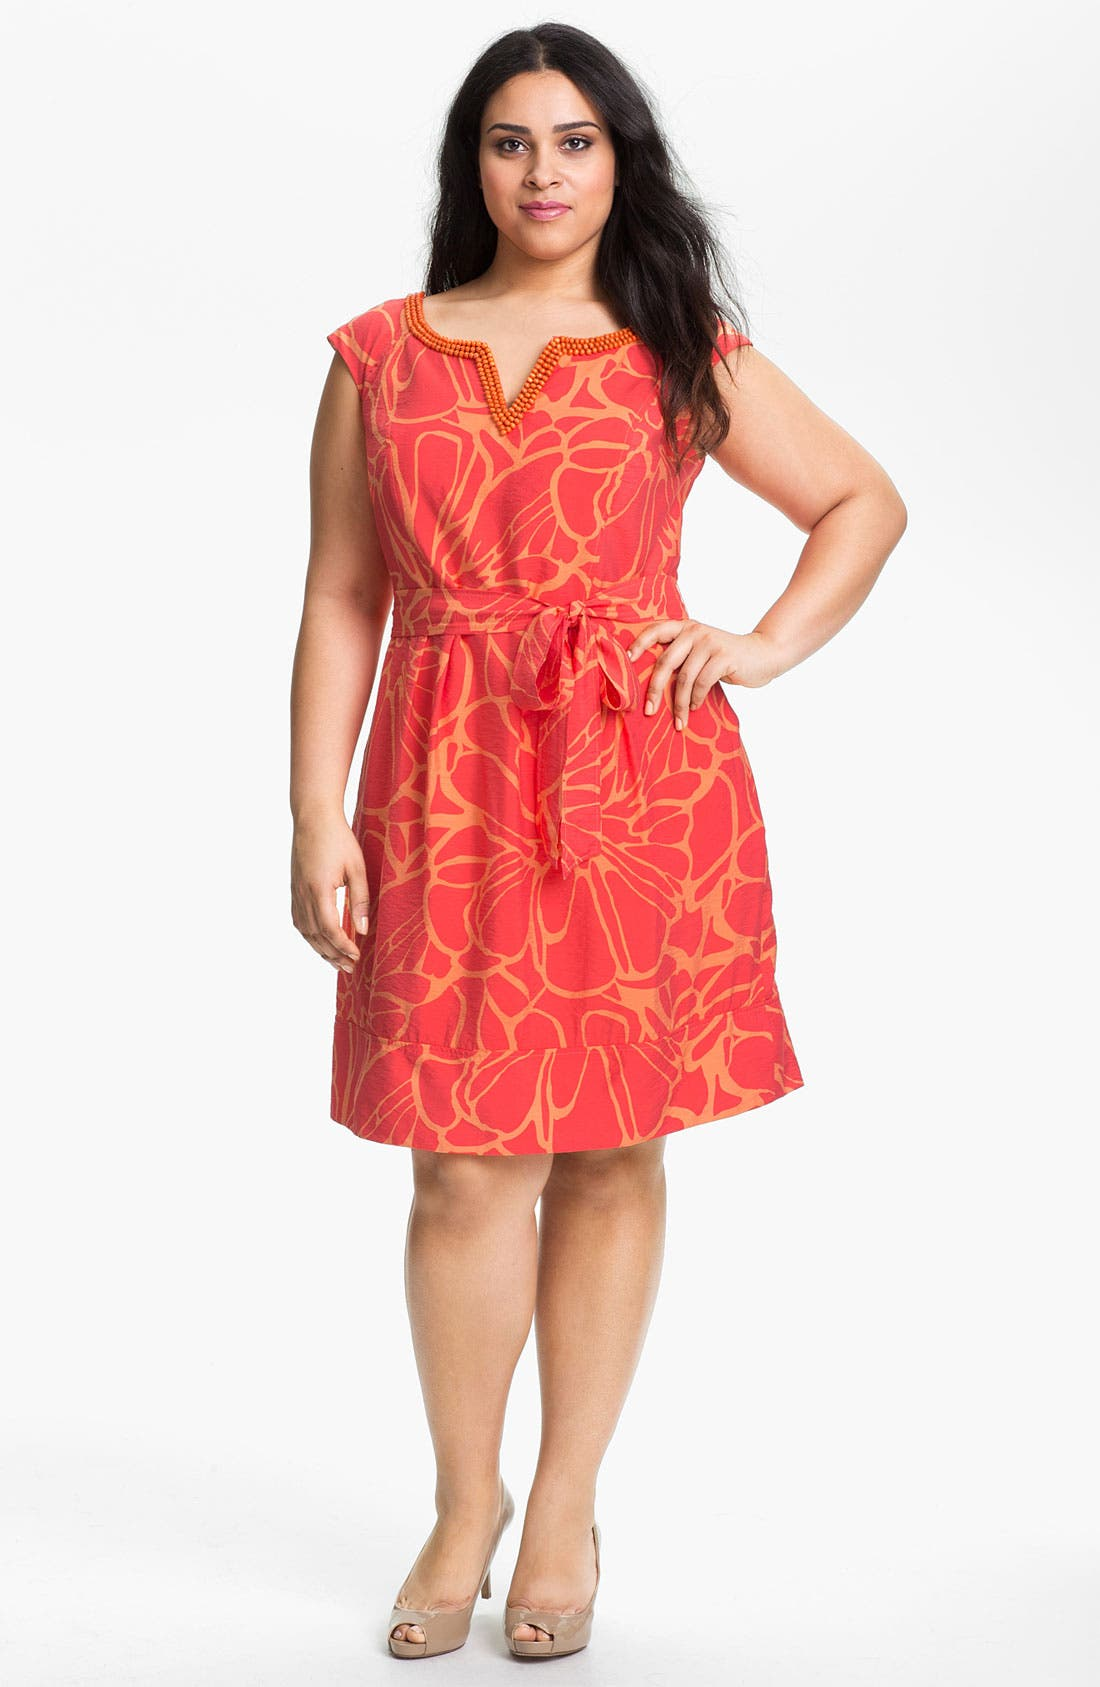 Alternate Image 1 Selected - Adrianna Papell Print Fit & Flare Dress (Plus Size)